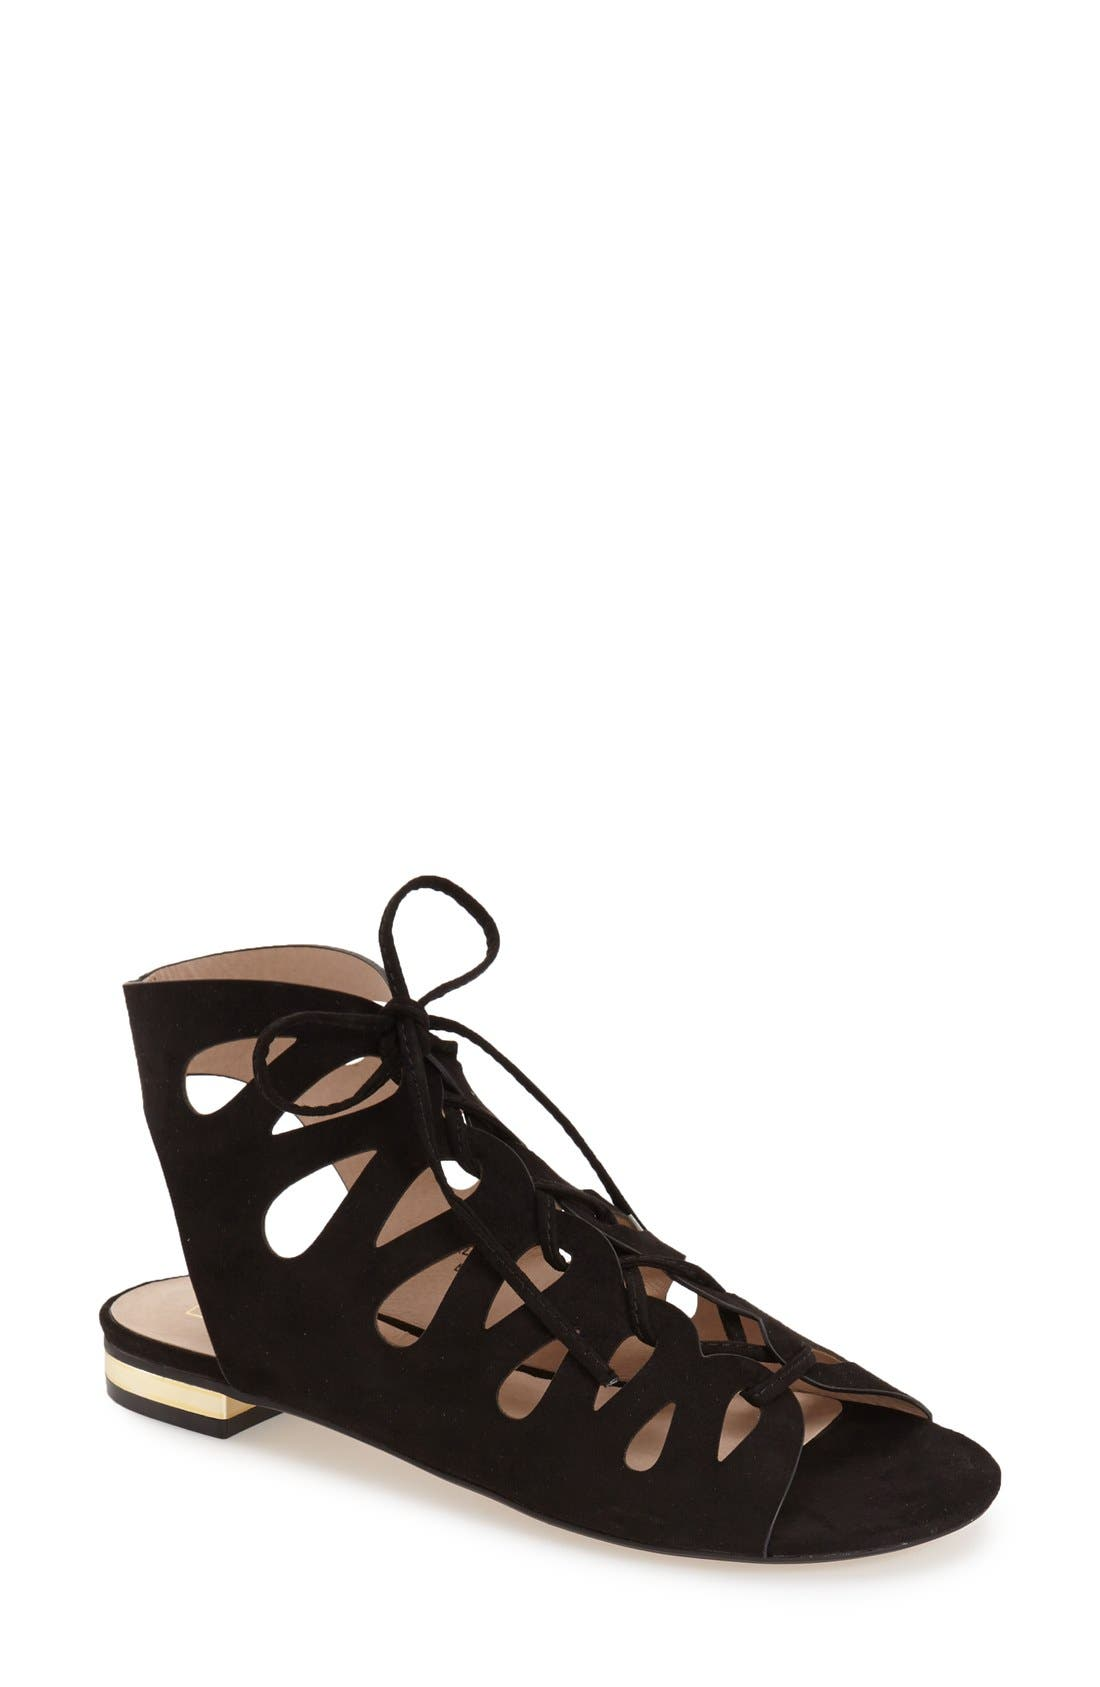 Alternate Image 1 Selected - Topshop 'Hello Micro' Gladiator Sandal (Women)